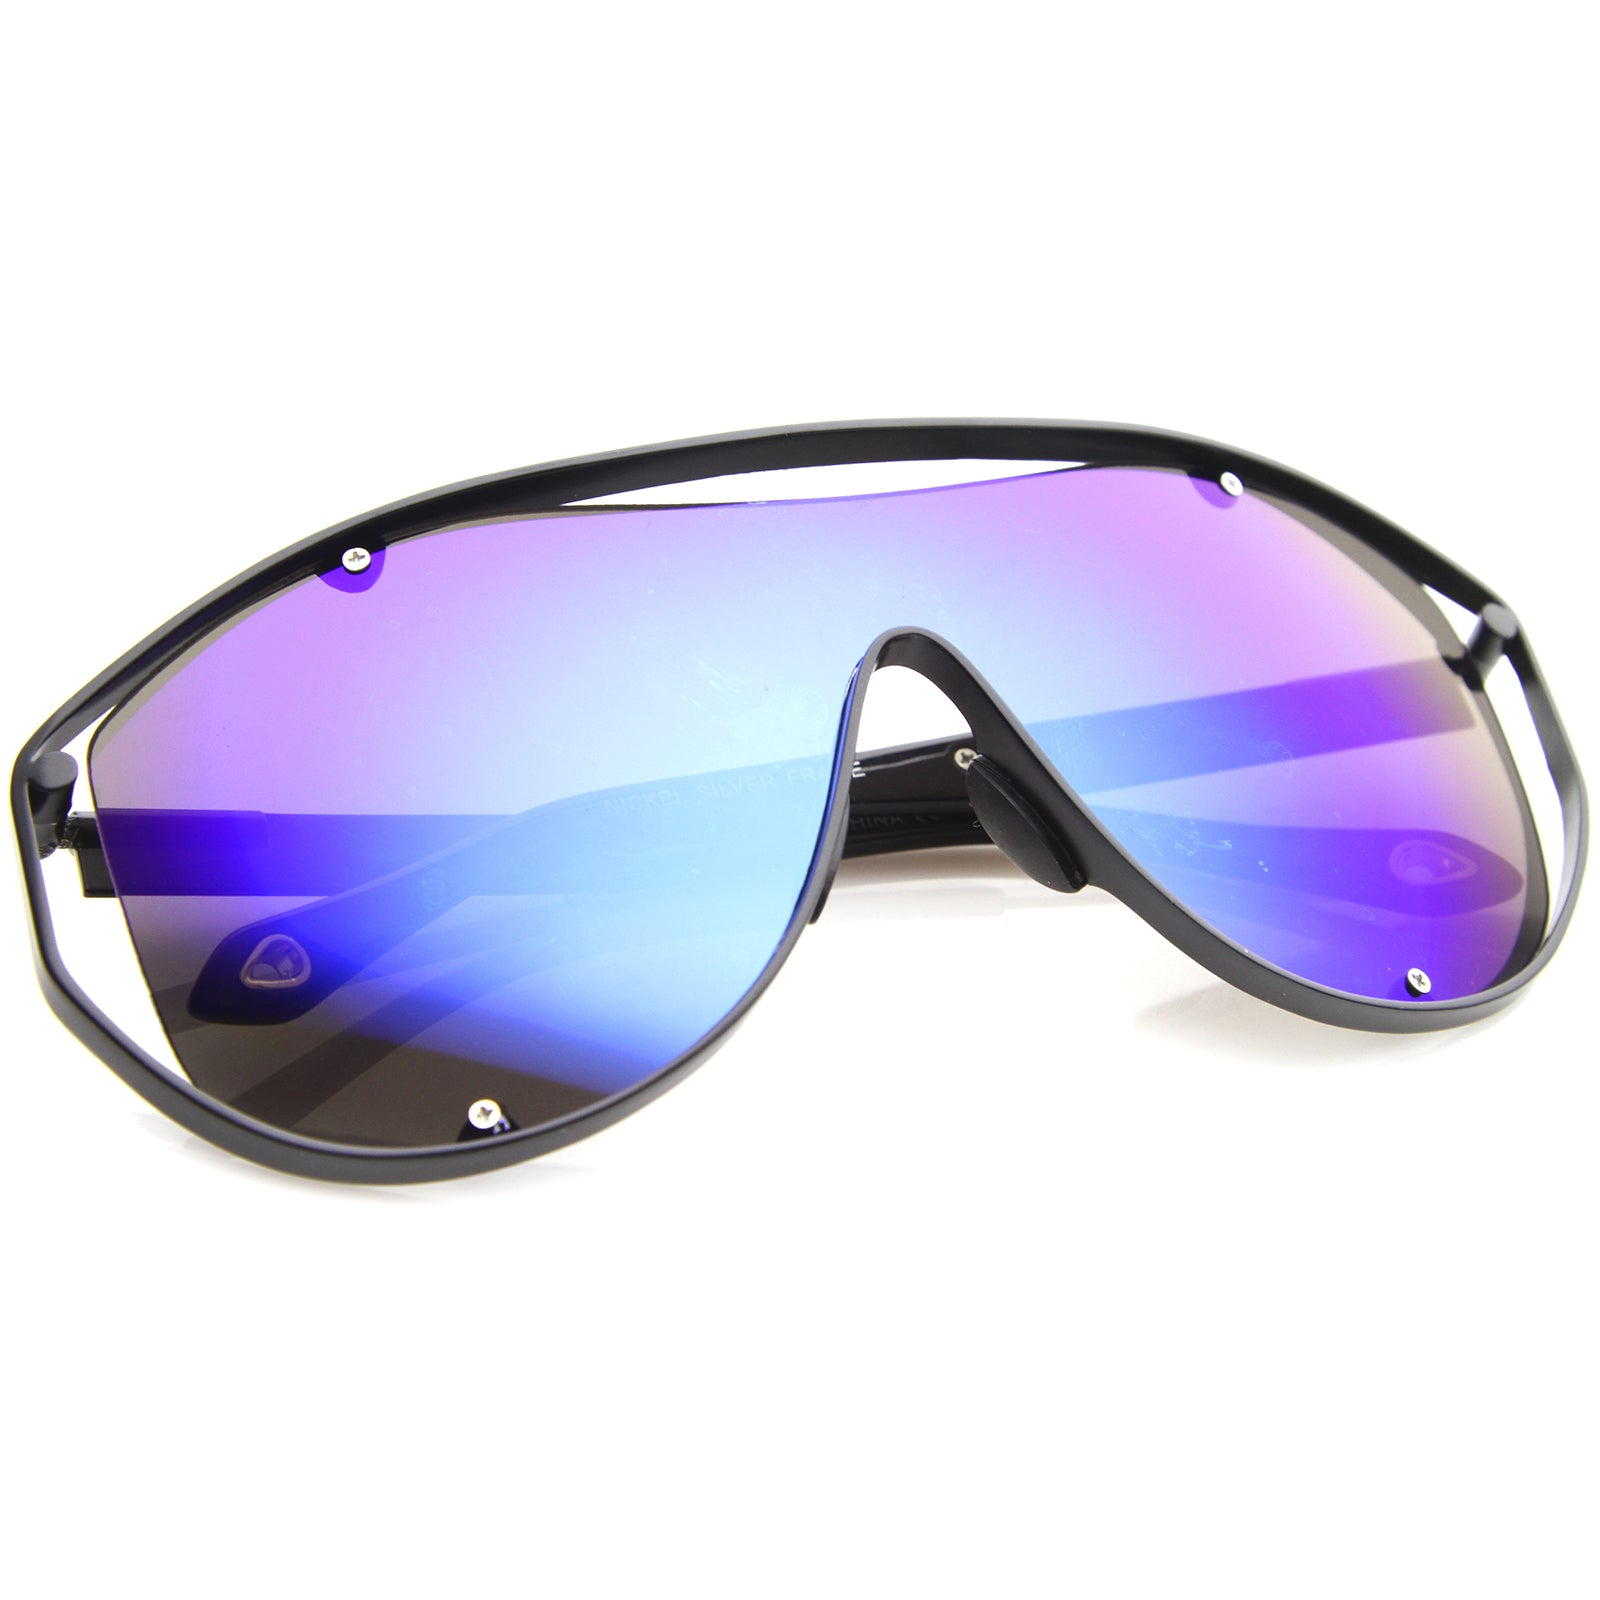 Modern Fashion Metal Frame Inner Rimless Mirror Lens Shield Sunglasses - sunglass.la - 12